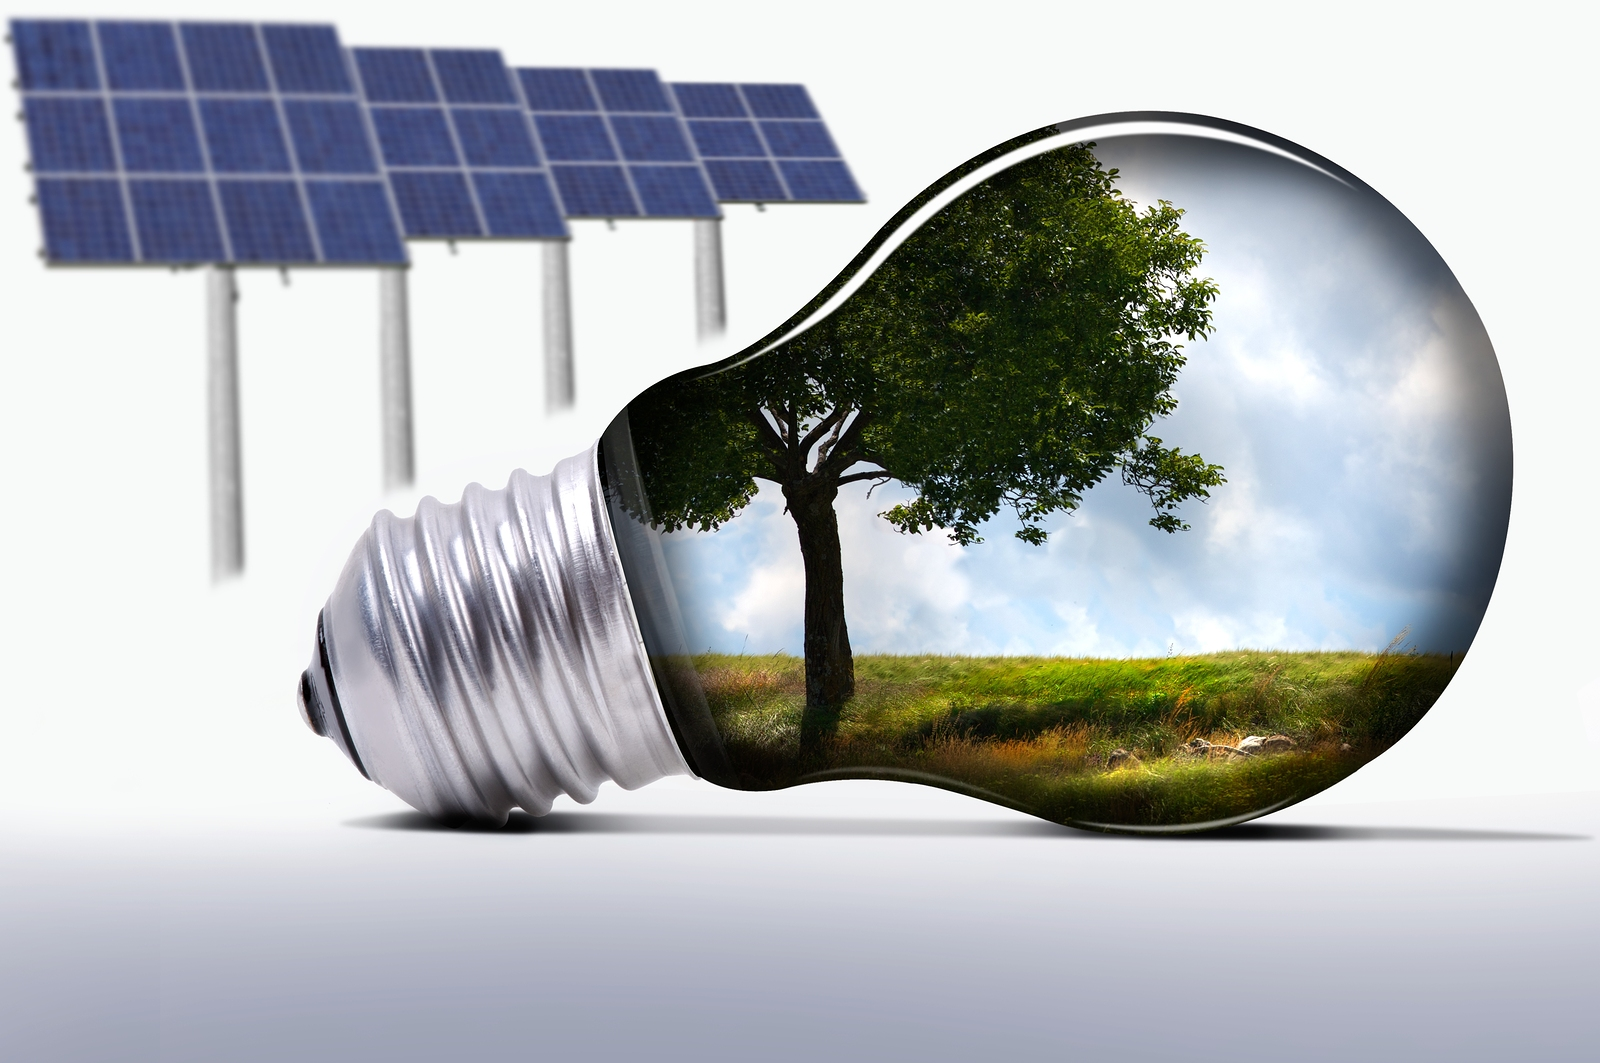 solar panels and a bulb with a green natural scene in it